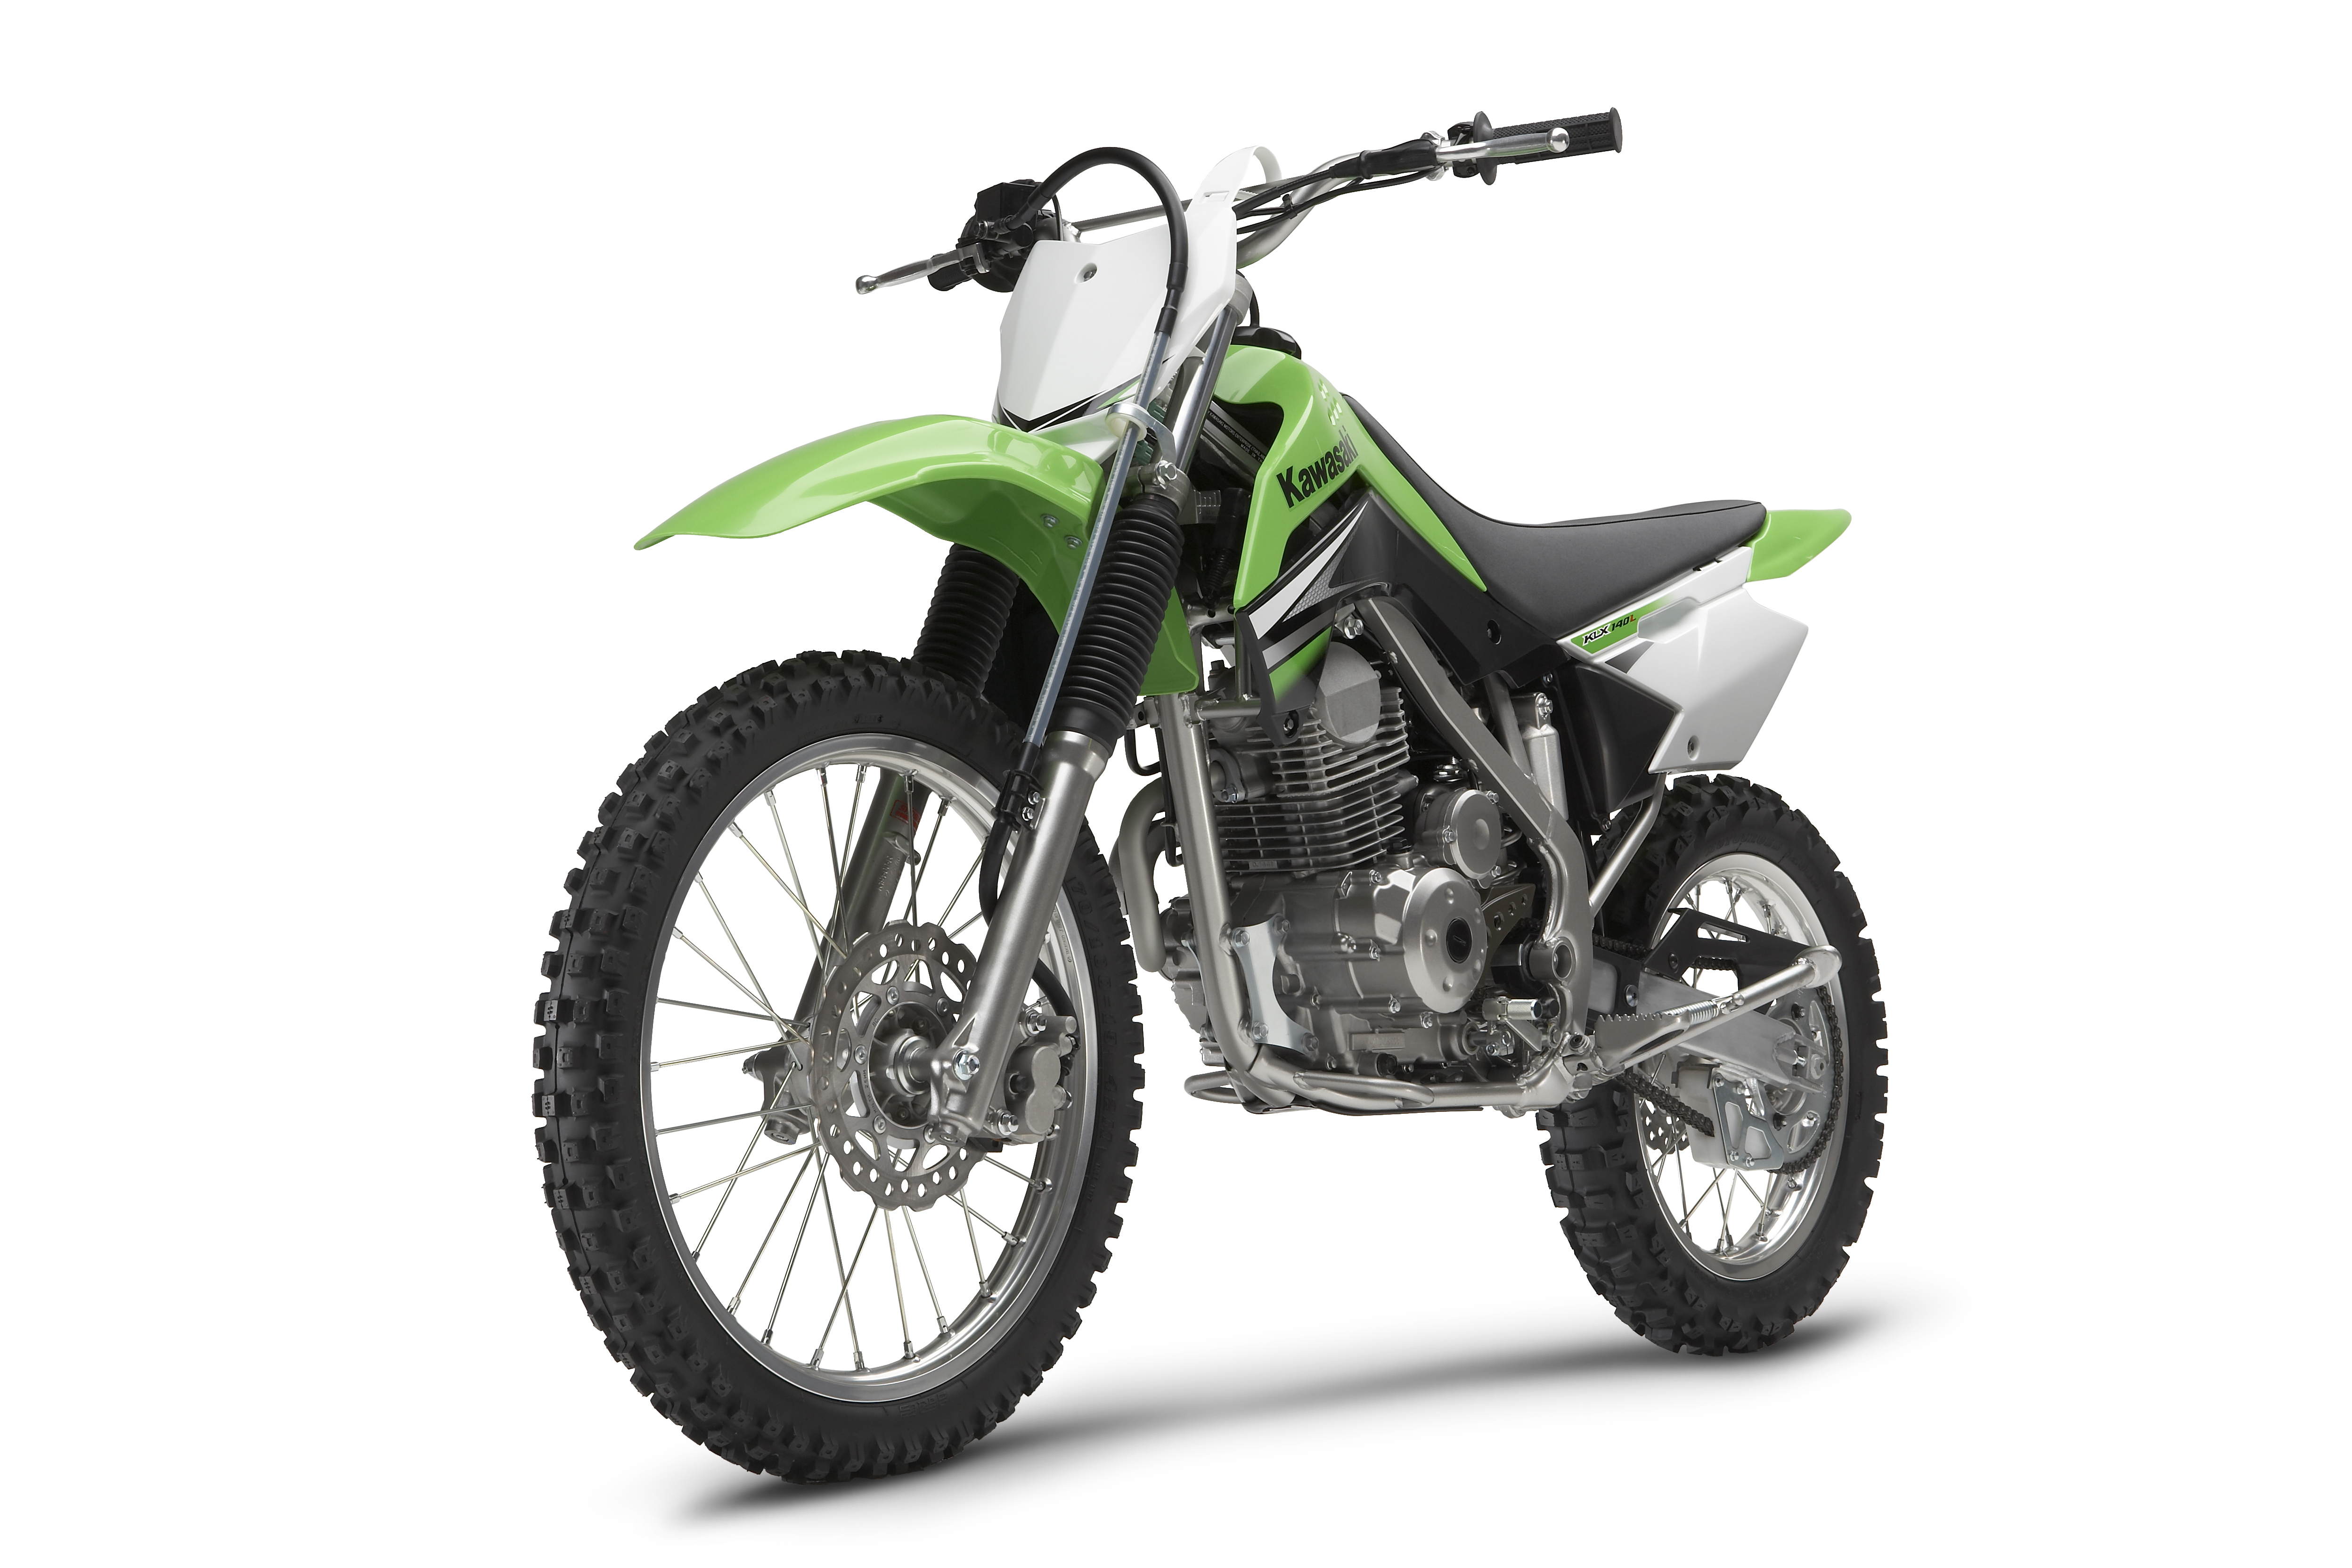 Tremendous 2009 Kawasaki Klx140 Klx140L Top Speed Ocoug Best Dining Table And Chair Ideas Images Ocougorg